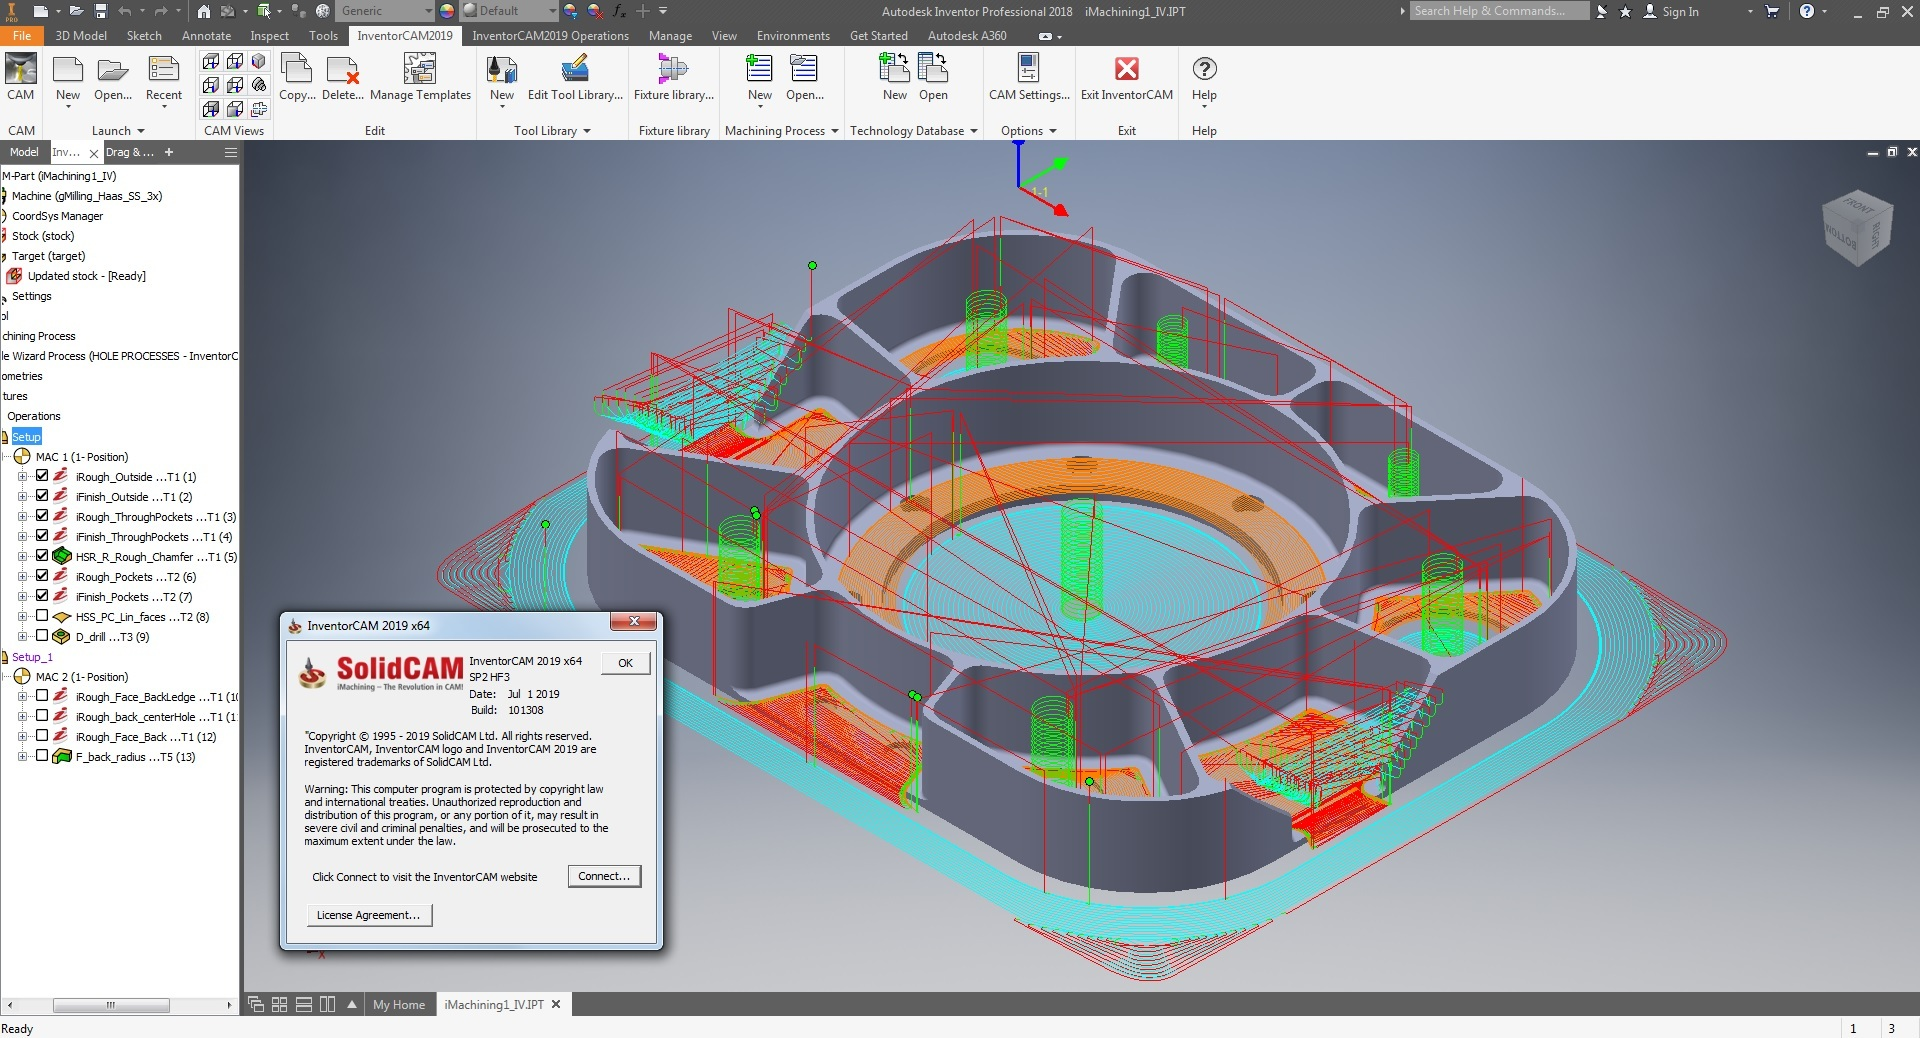 Programming with InventorCAM 2019 SP2 HF3 for Autodesk Inventor x64 full